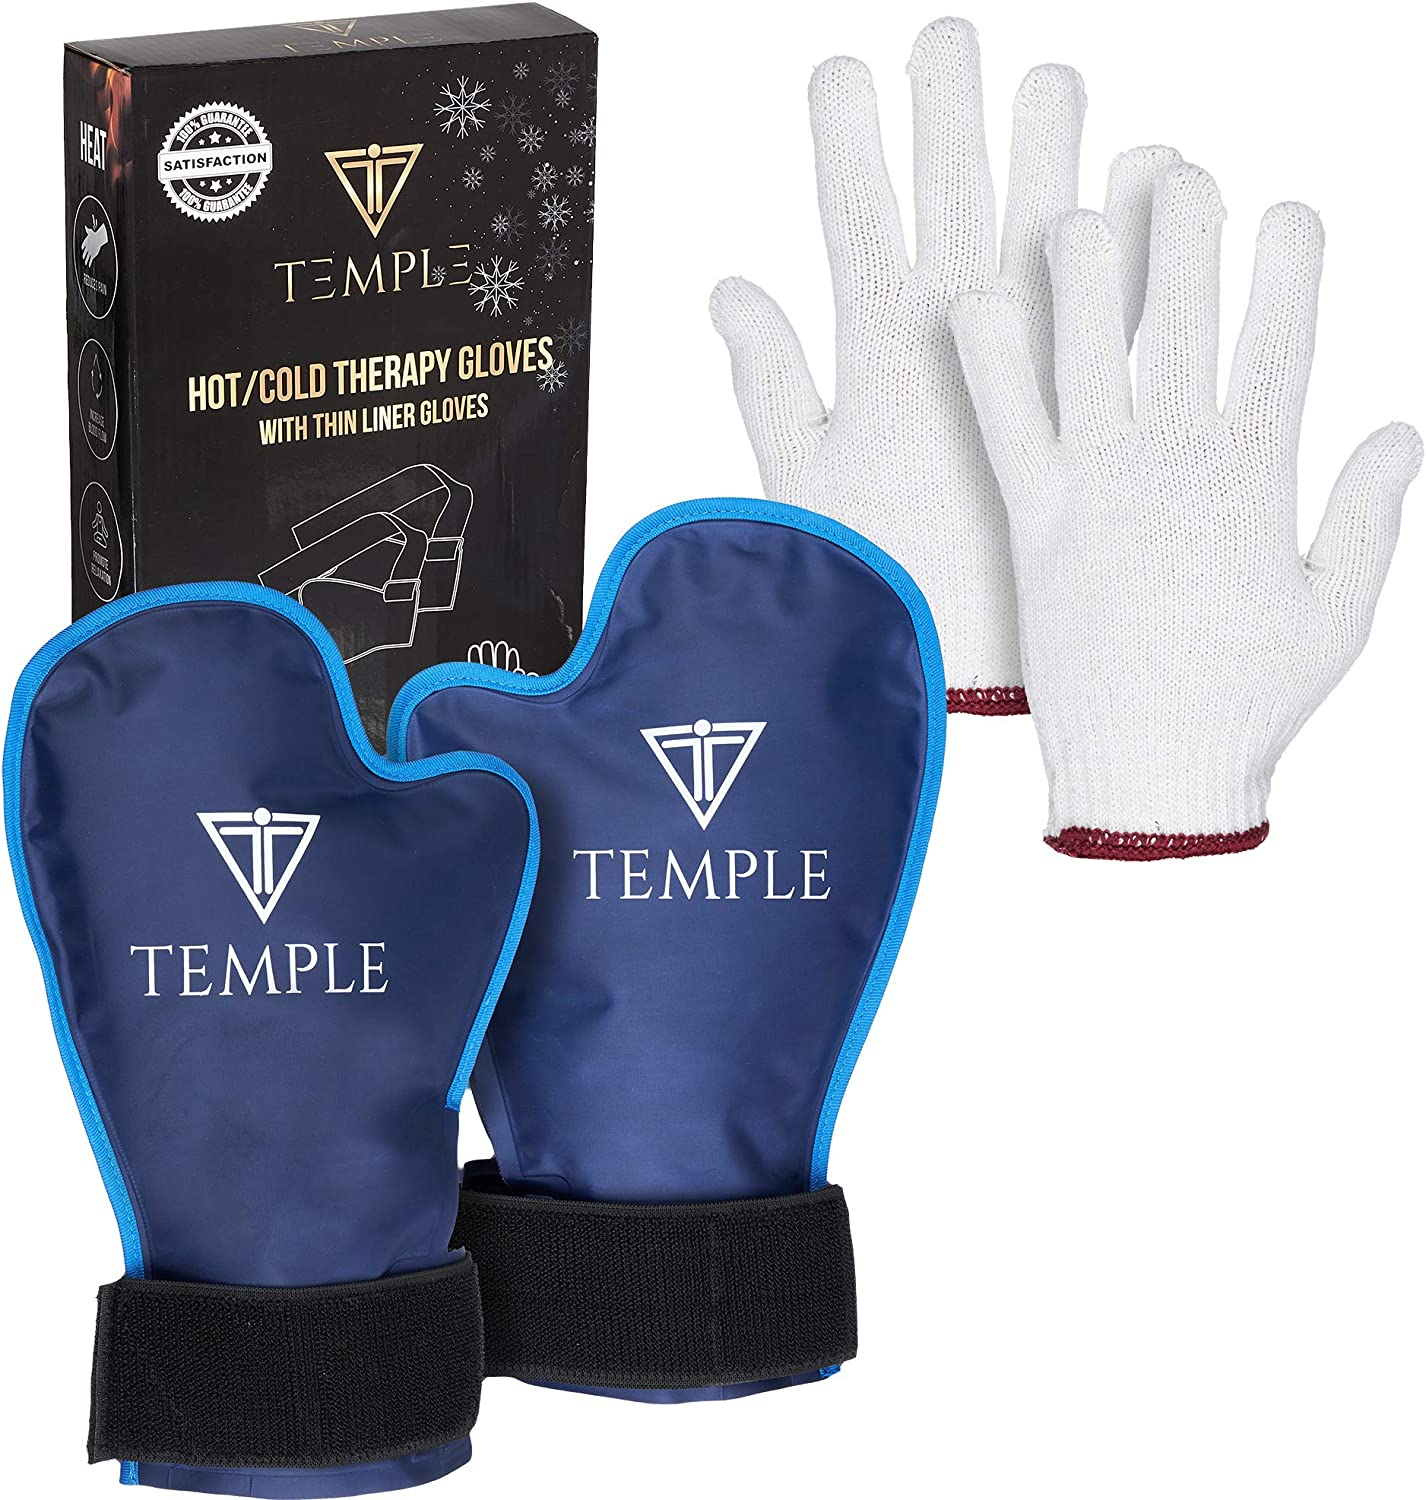 2 Premium Hot/Cold Therapy Gel Gloves with Glove Liners. Great Recovery for Chemotherapy, Cryotherapy, Sore, Aching, inflamed Hands.